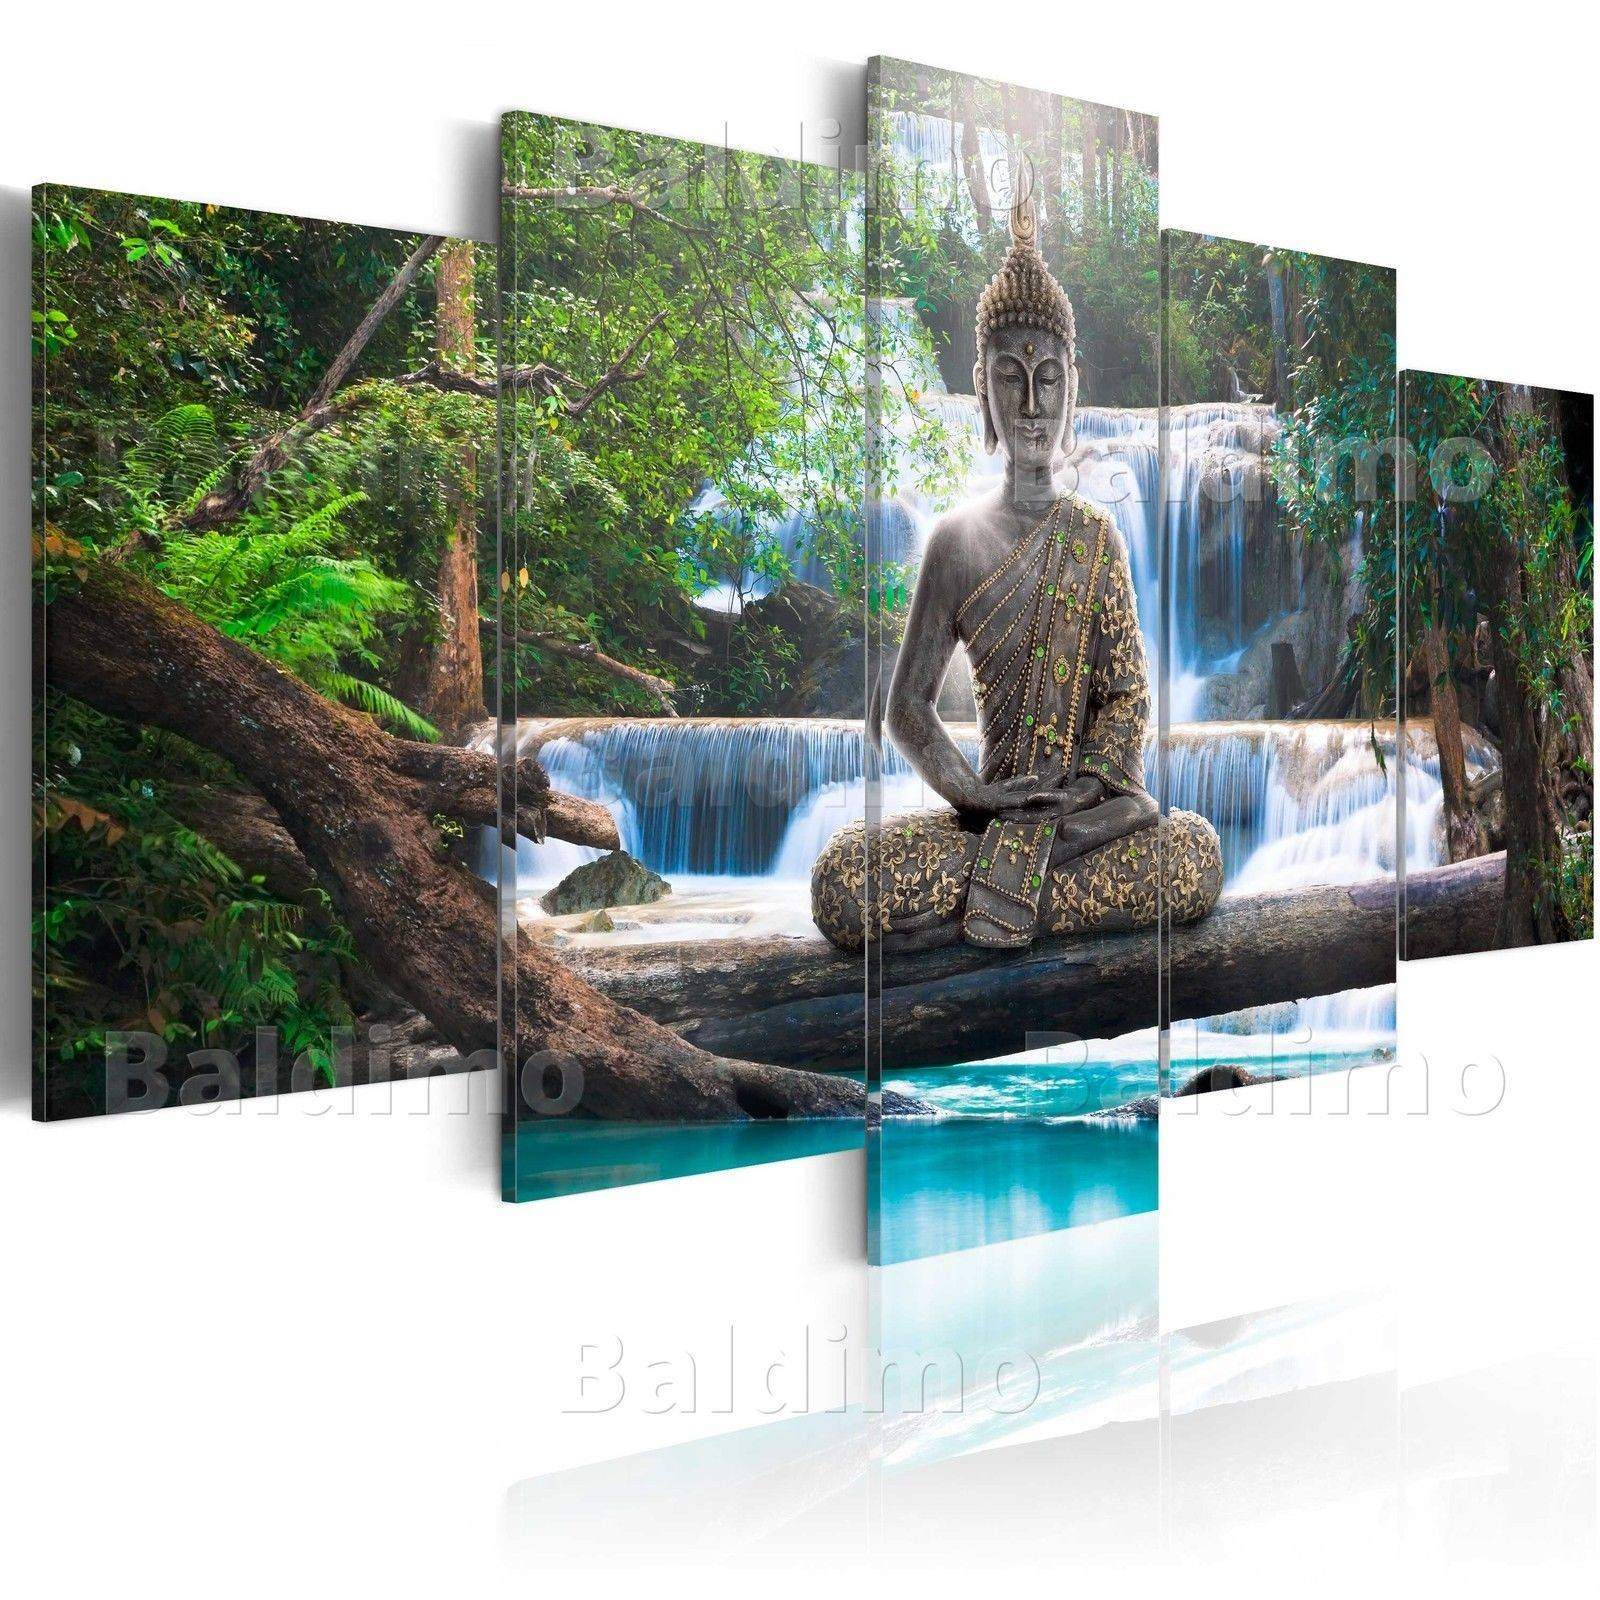 5Panels Large Buddha Waterfall Art Print Picture Canvas Wall Art with regard to Most Current Large Buddha Wall Art